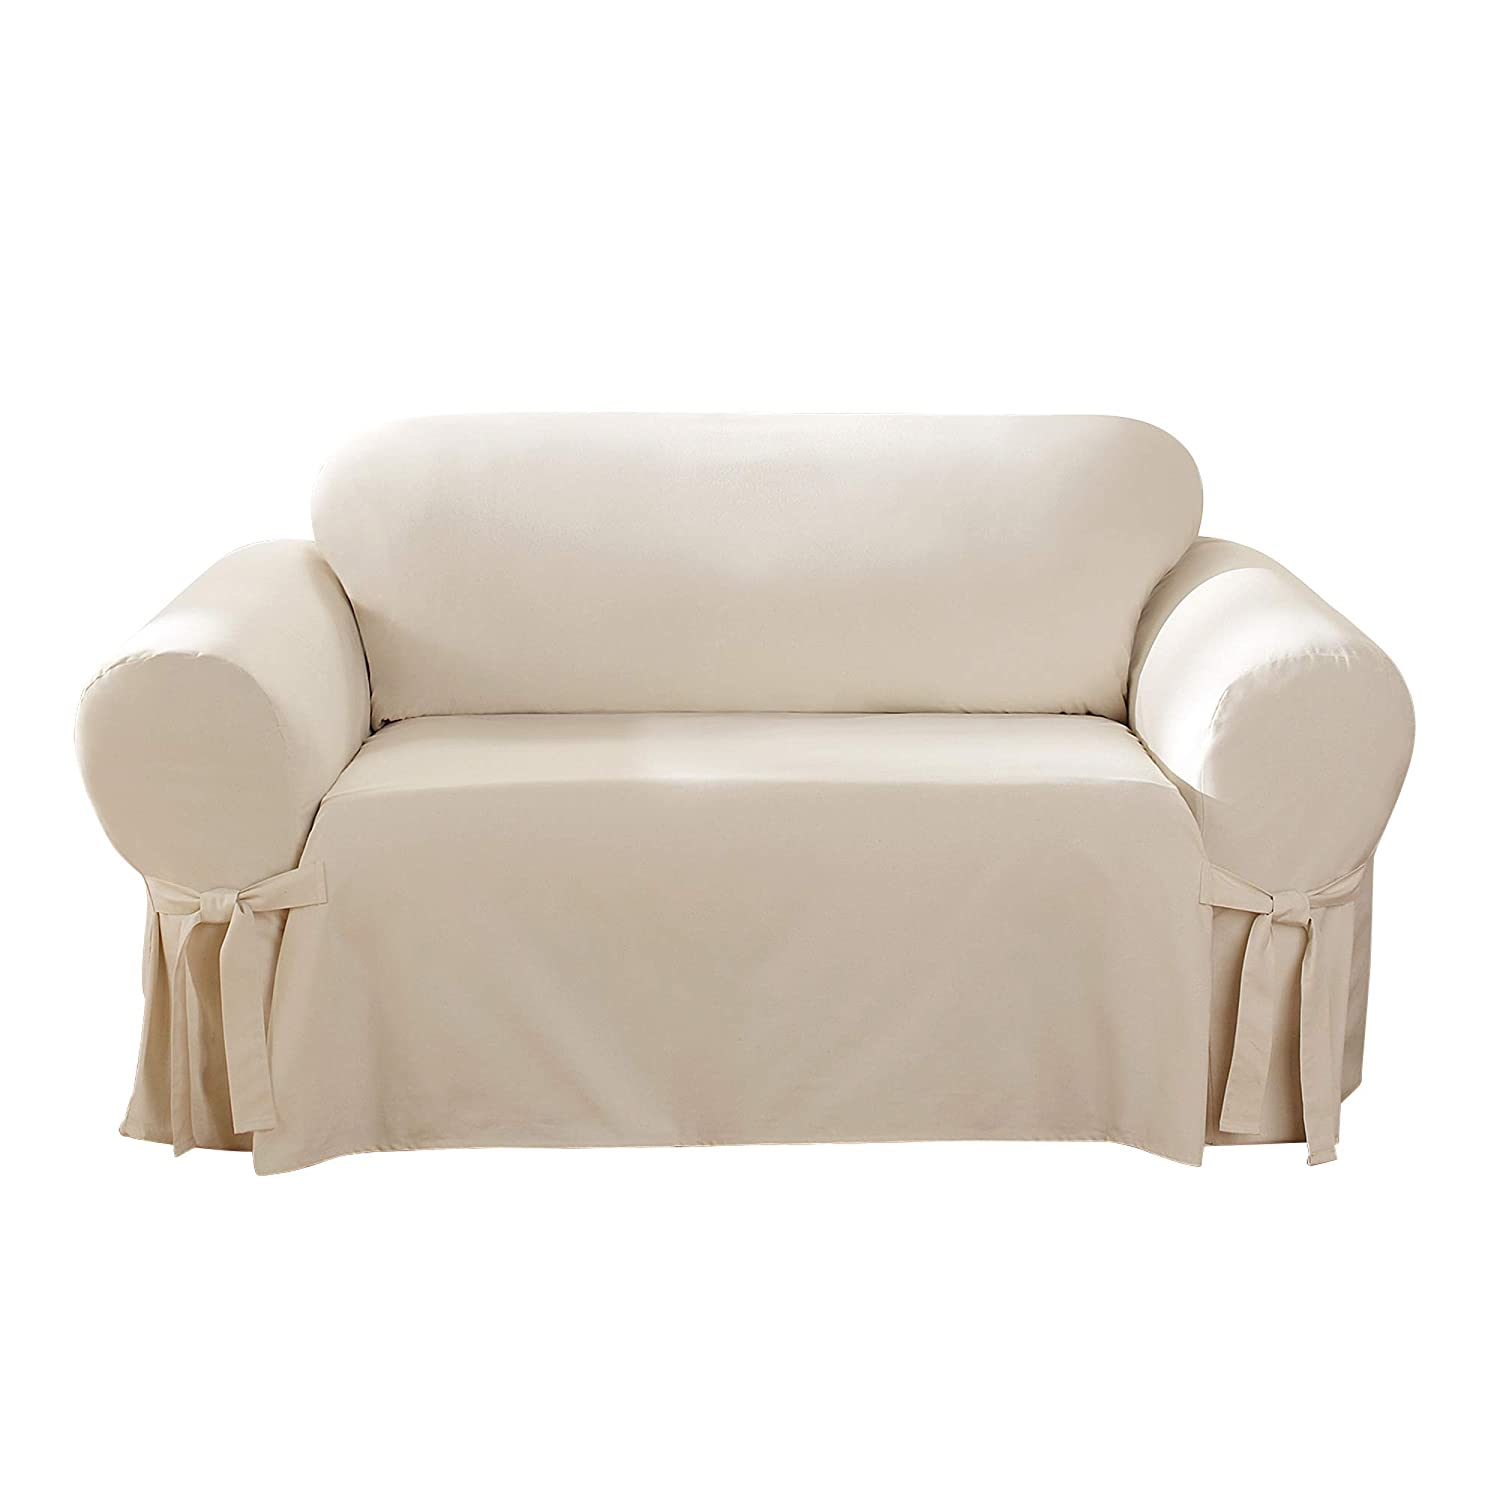 Cool Surefit Cotton Duck Loveseat Slipcover Natural Ibusinesslaw Wood Chair Design Ideas Ibusinesslaworg